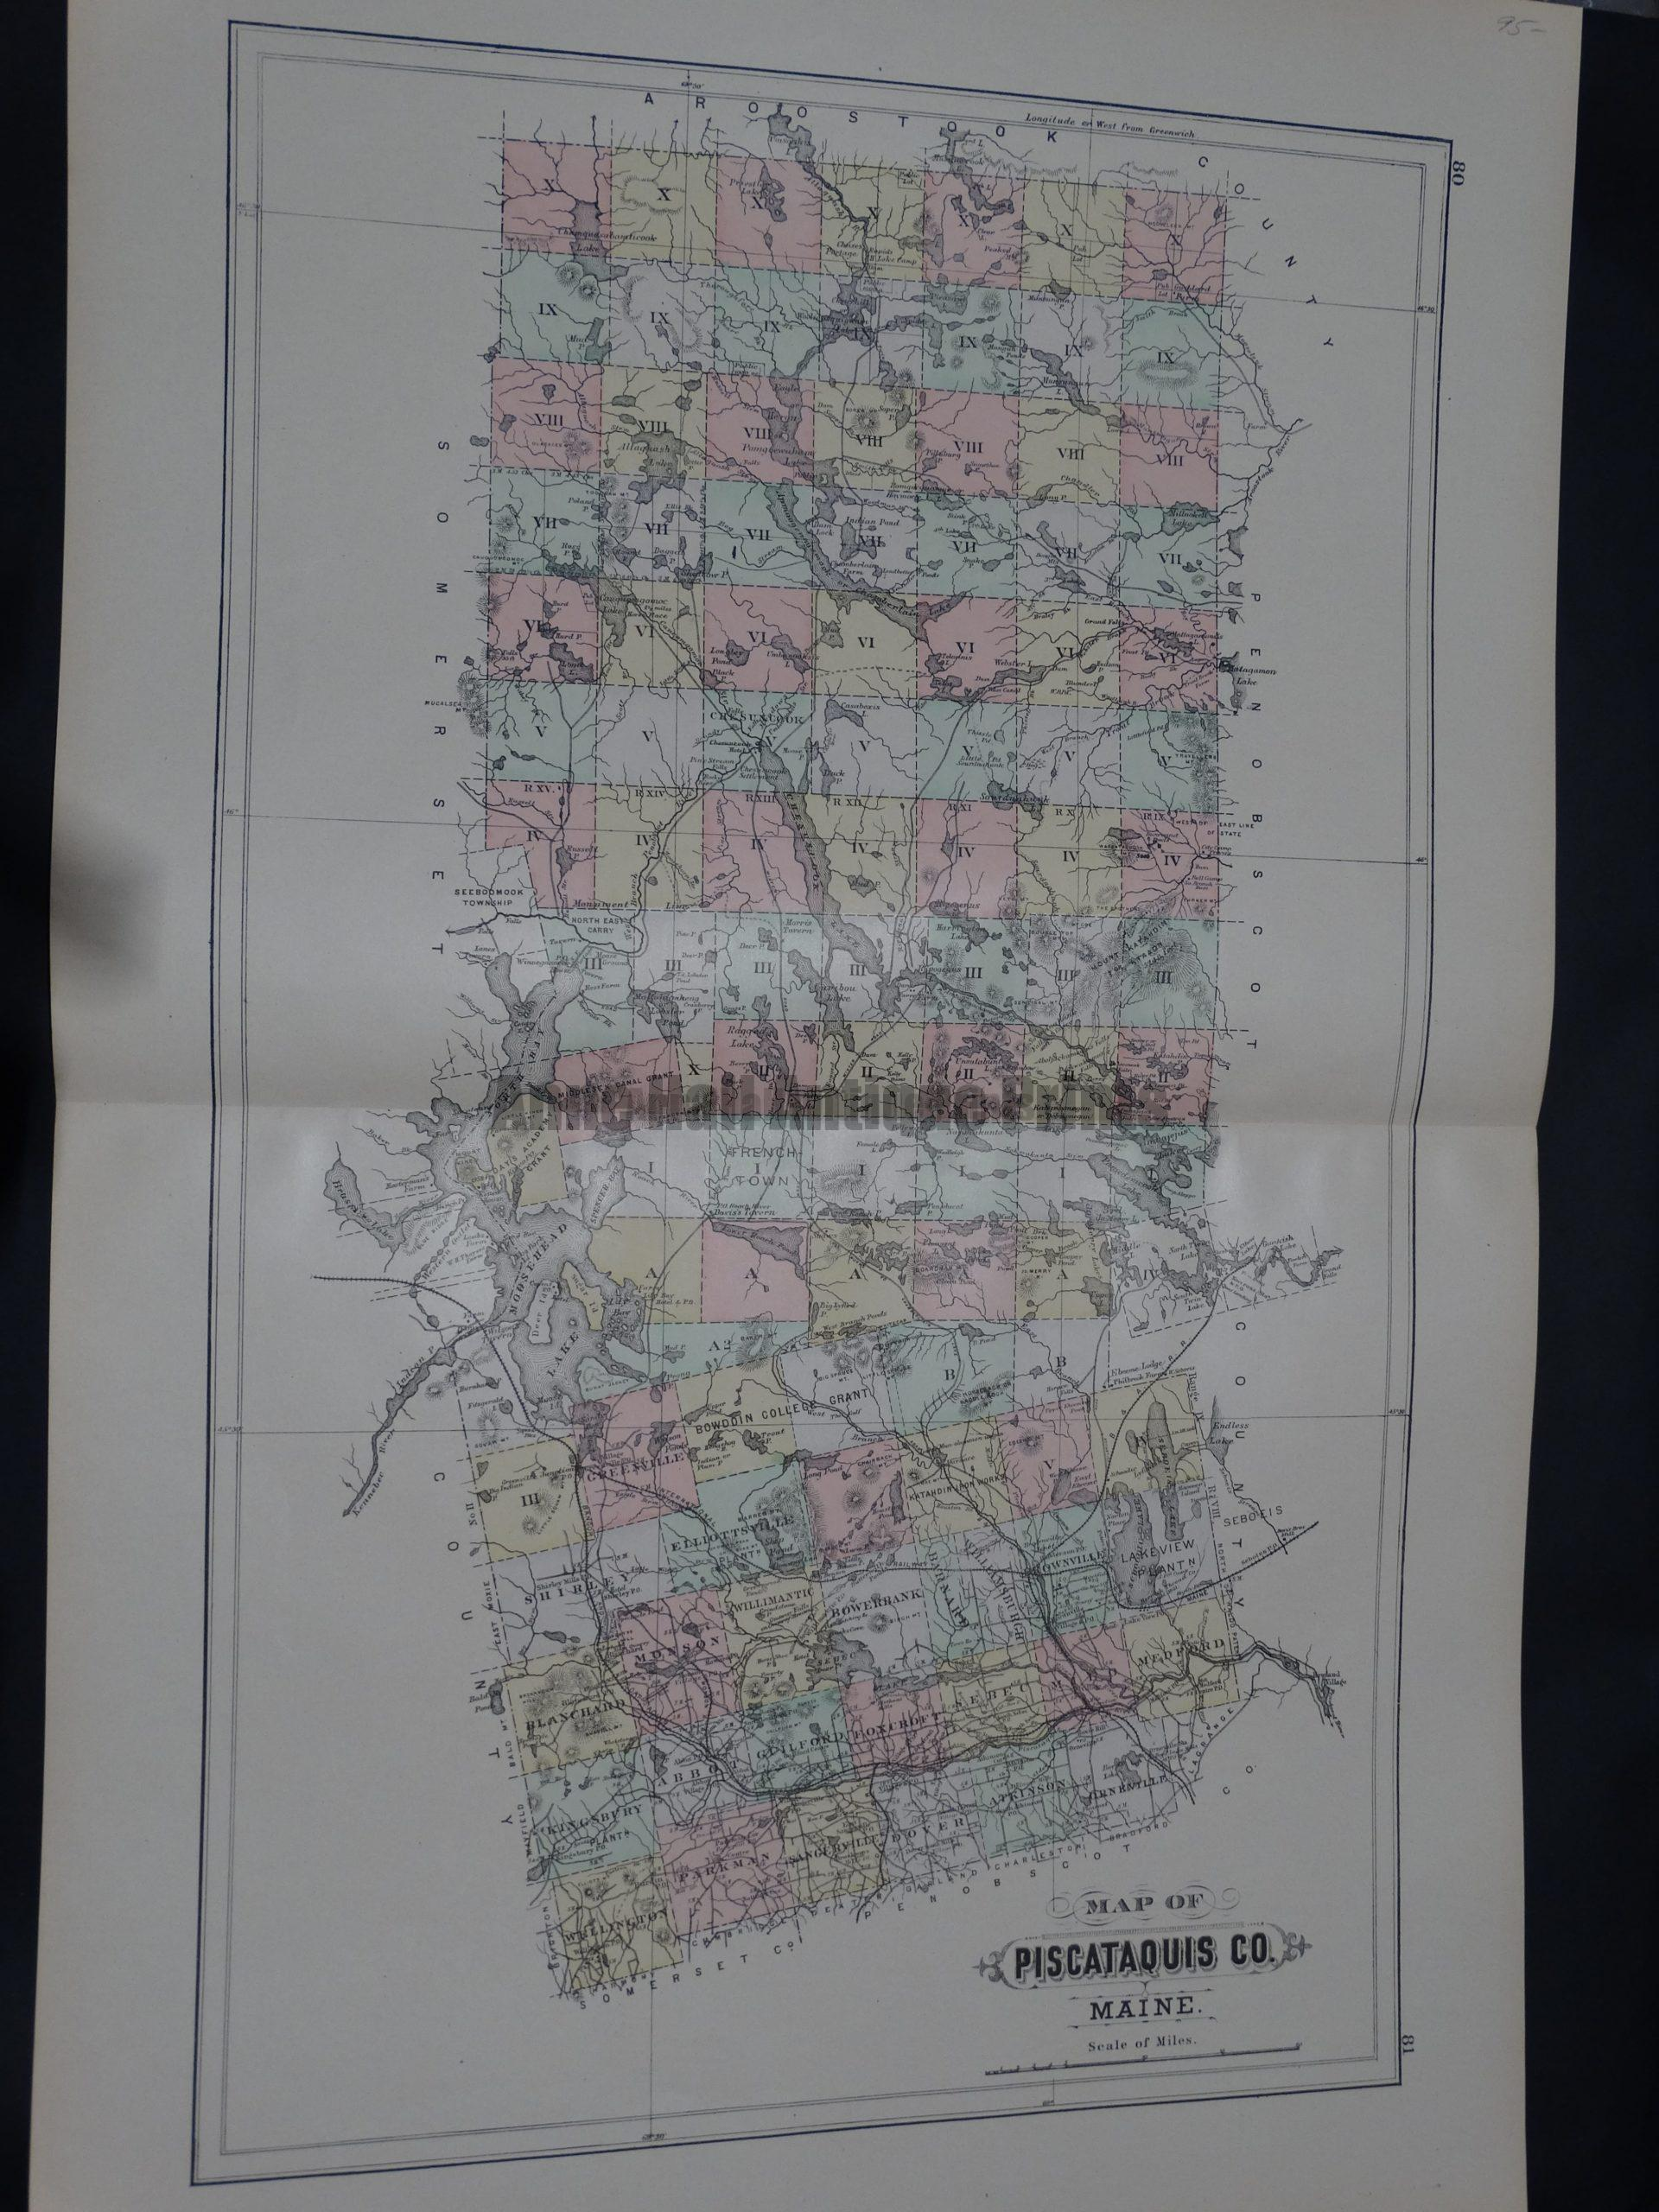 Map of Piscataquis Co Maine